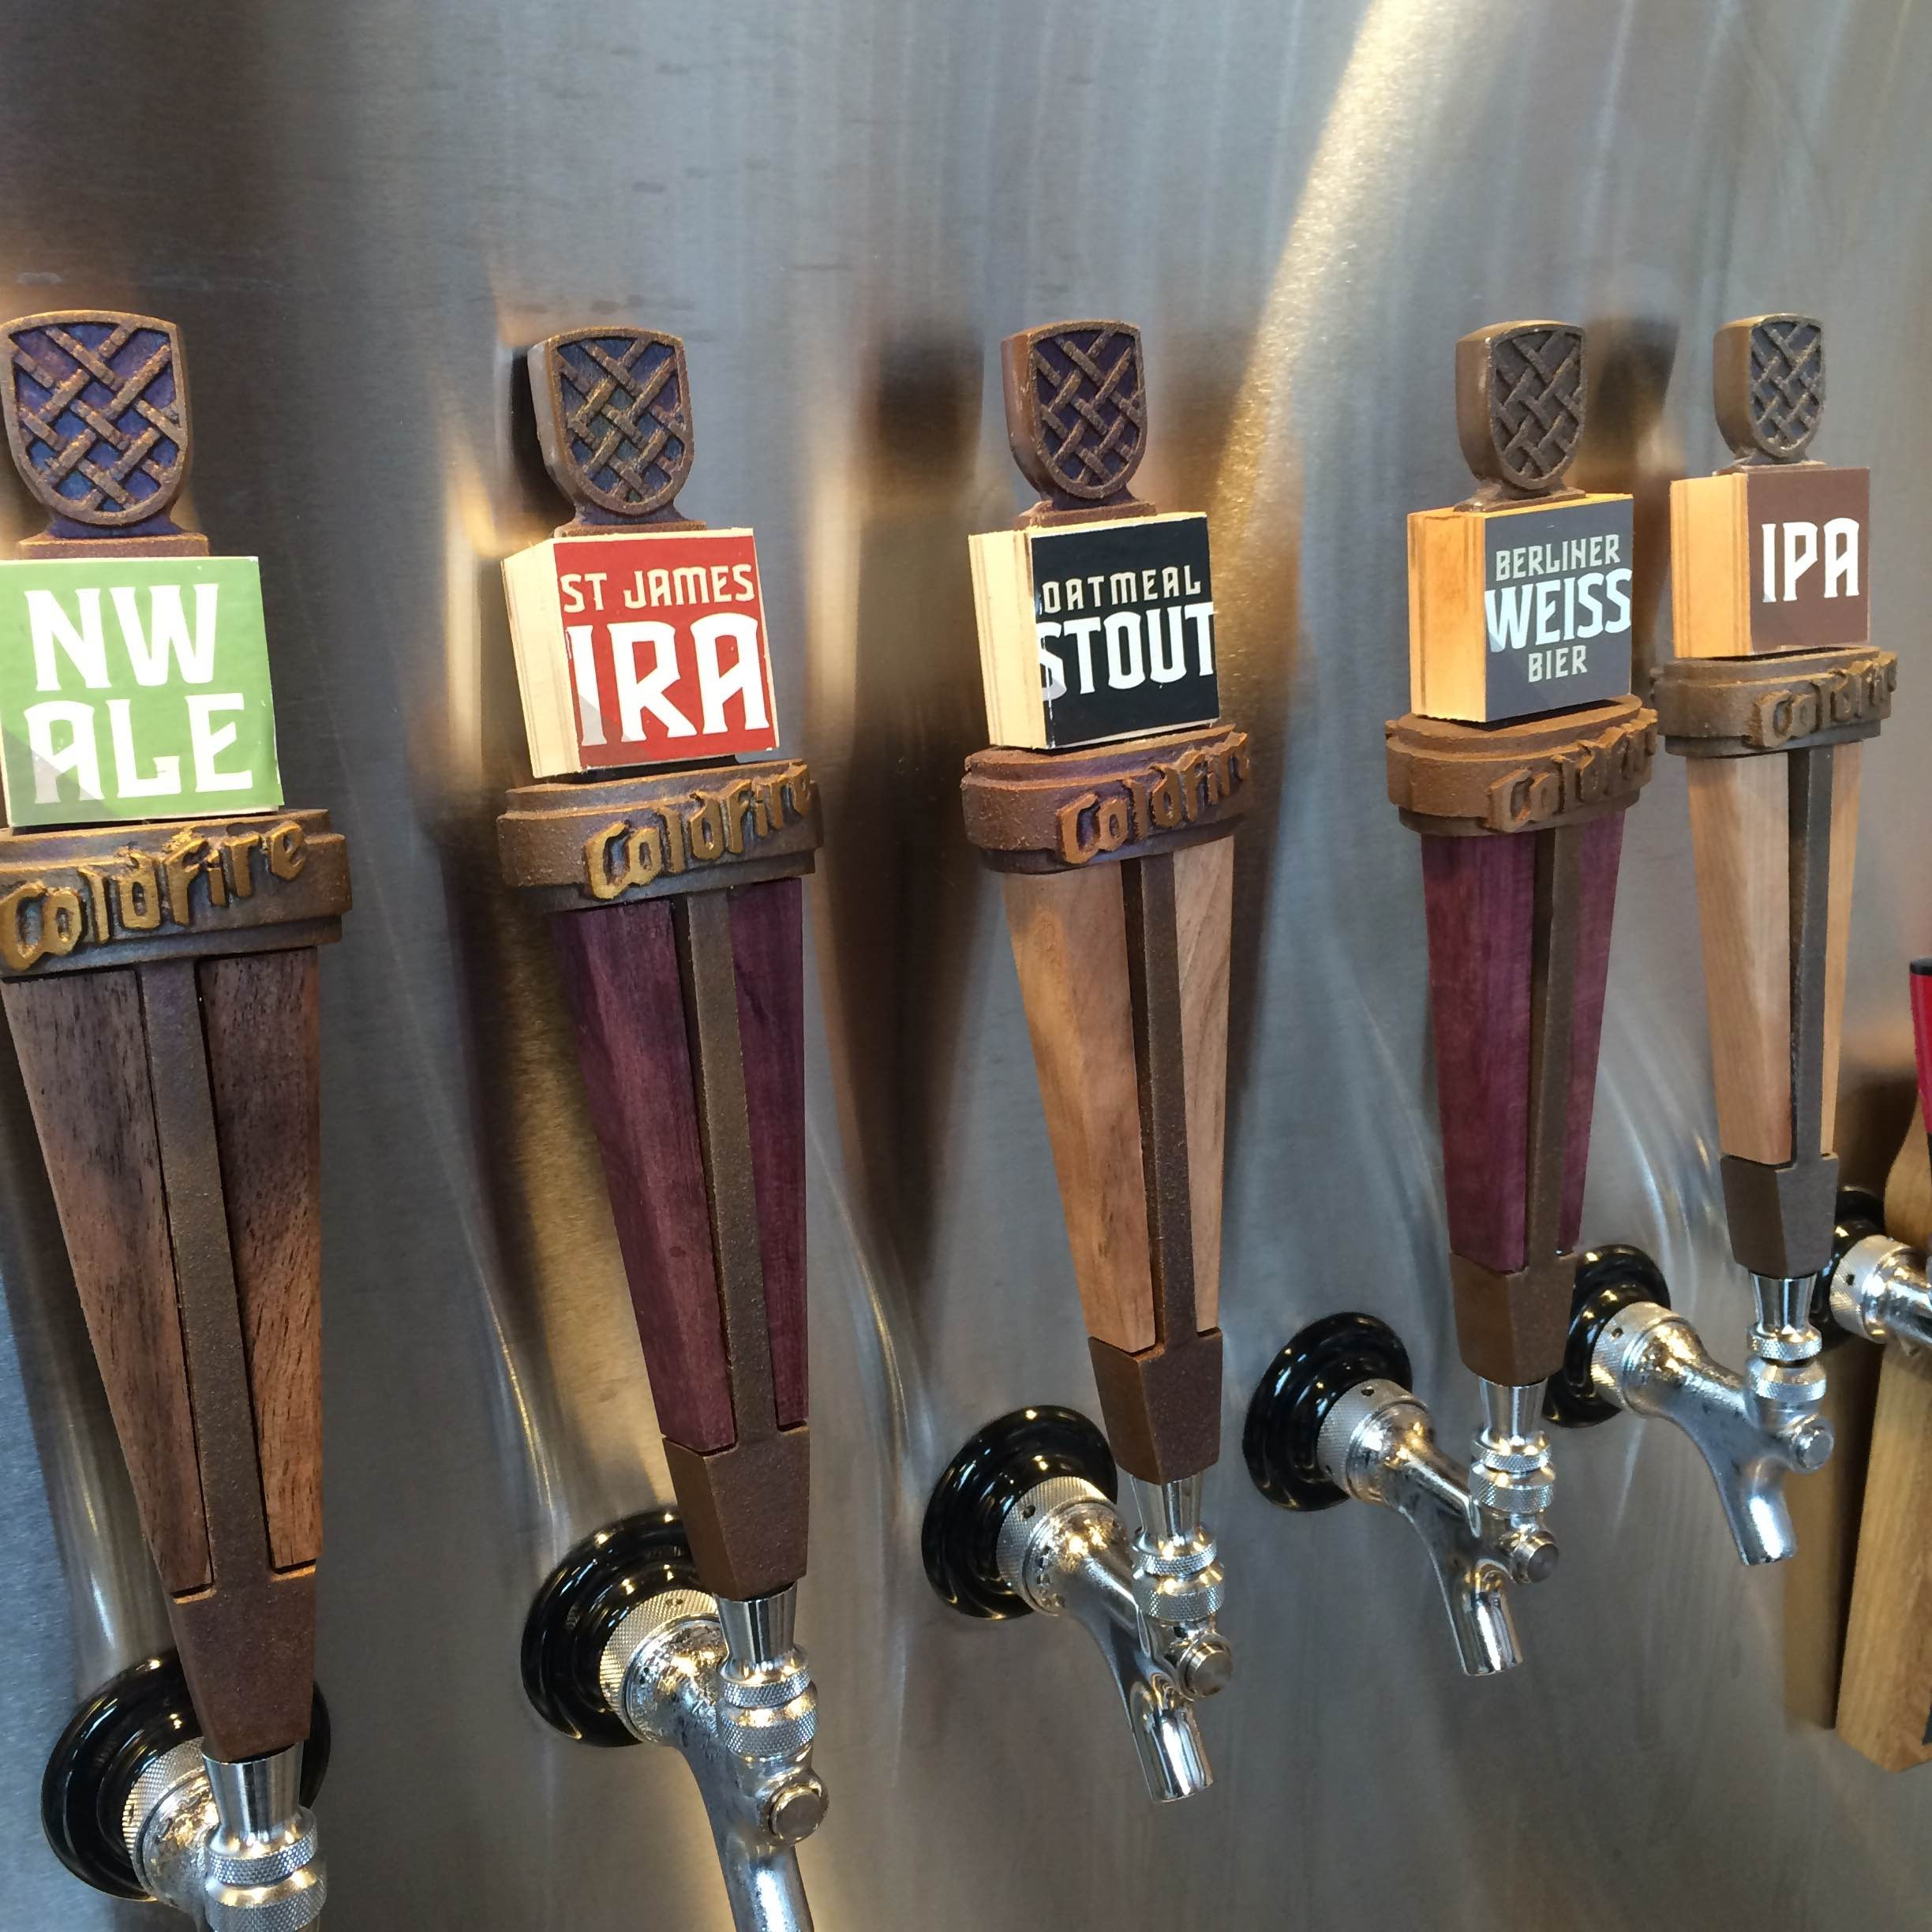 ColdFire Brewing Taps (photo by Matt Van Wyk)